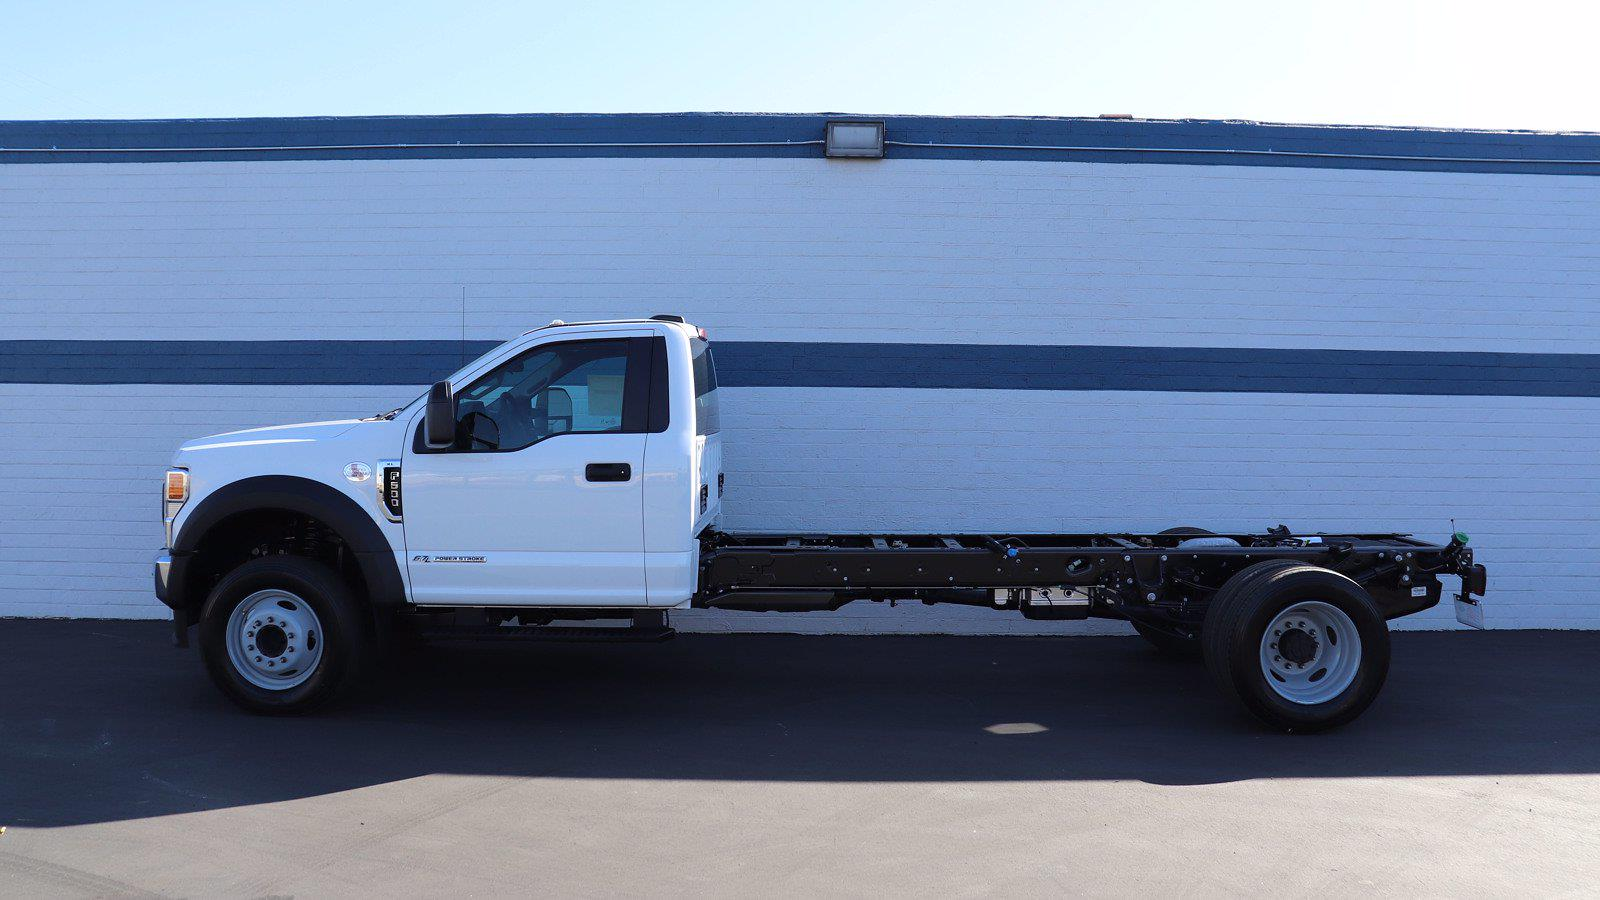 2021 Ford F-600 Regular Cab DRW 4x2, Cab Chassis #24567 - photo 1